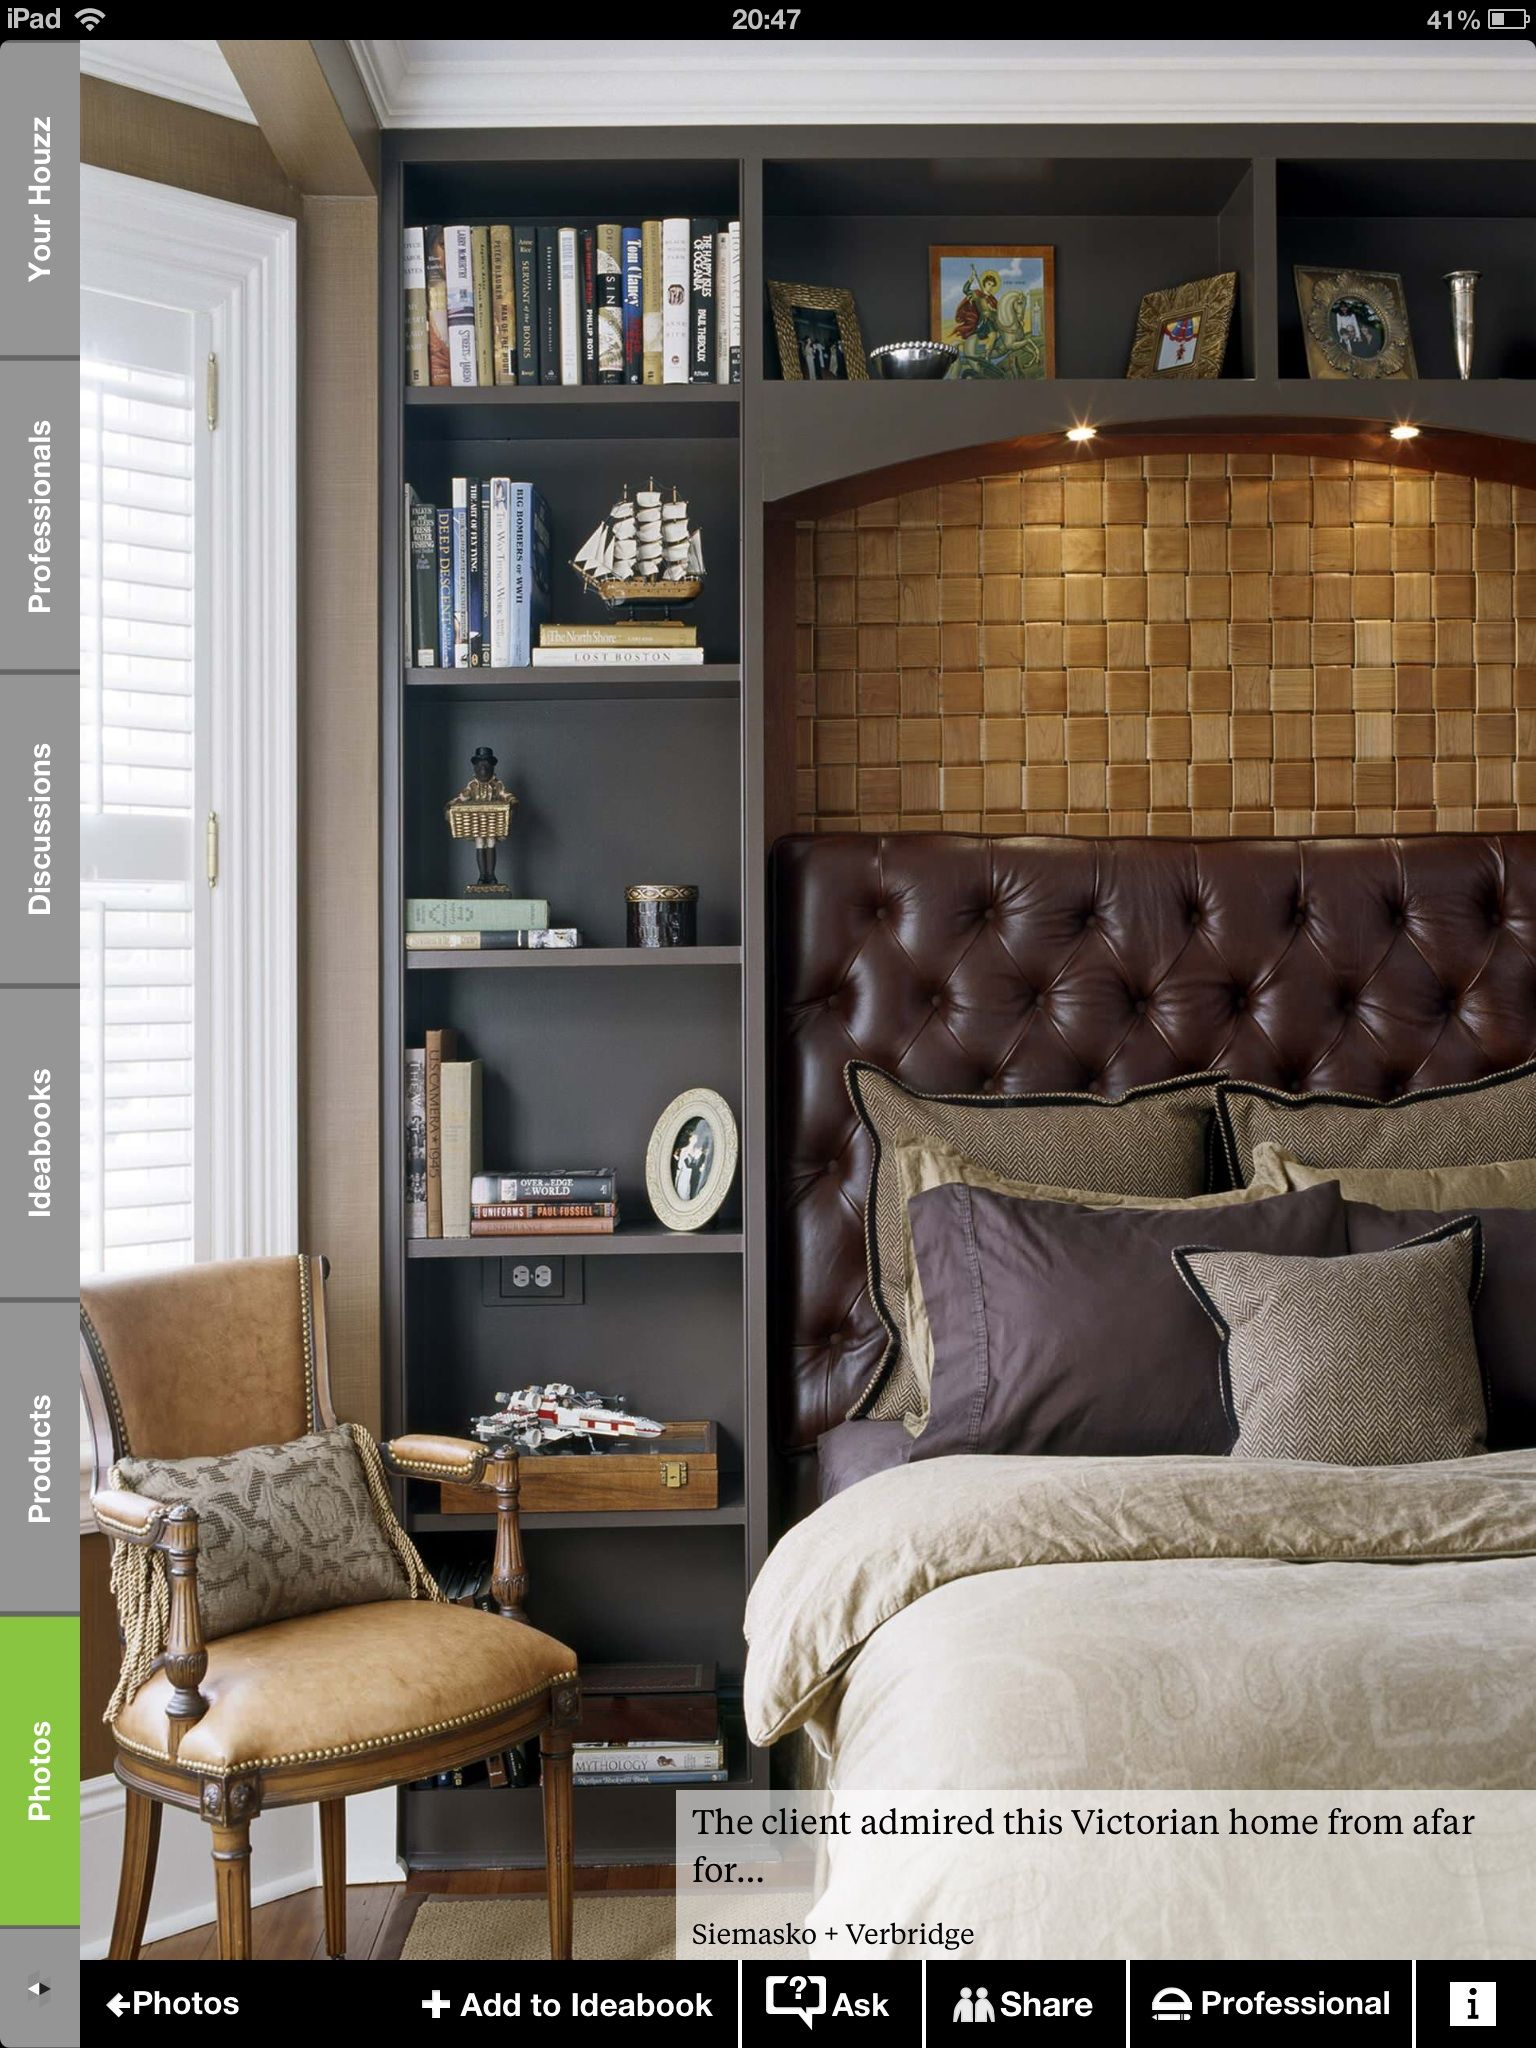 Glamorous Masculine Bathroom Ideas In Bedroom Victorian With Bookcases Around